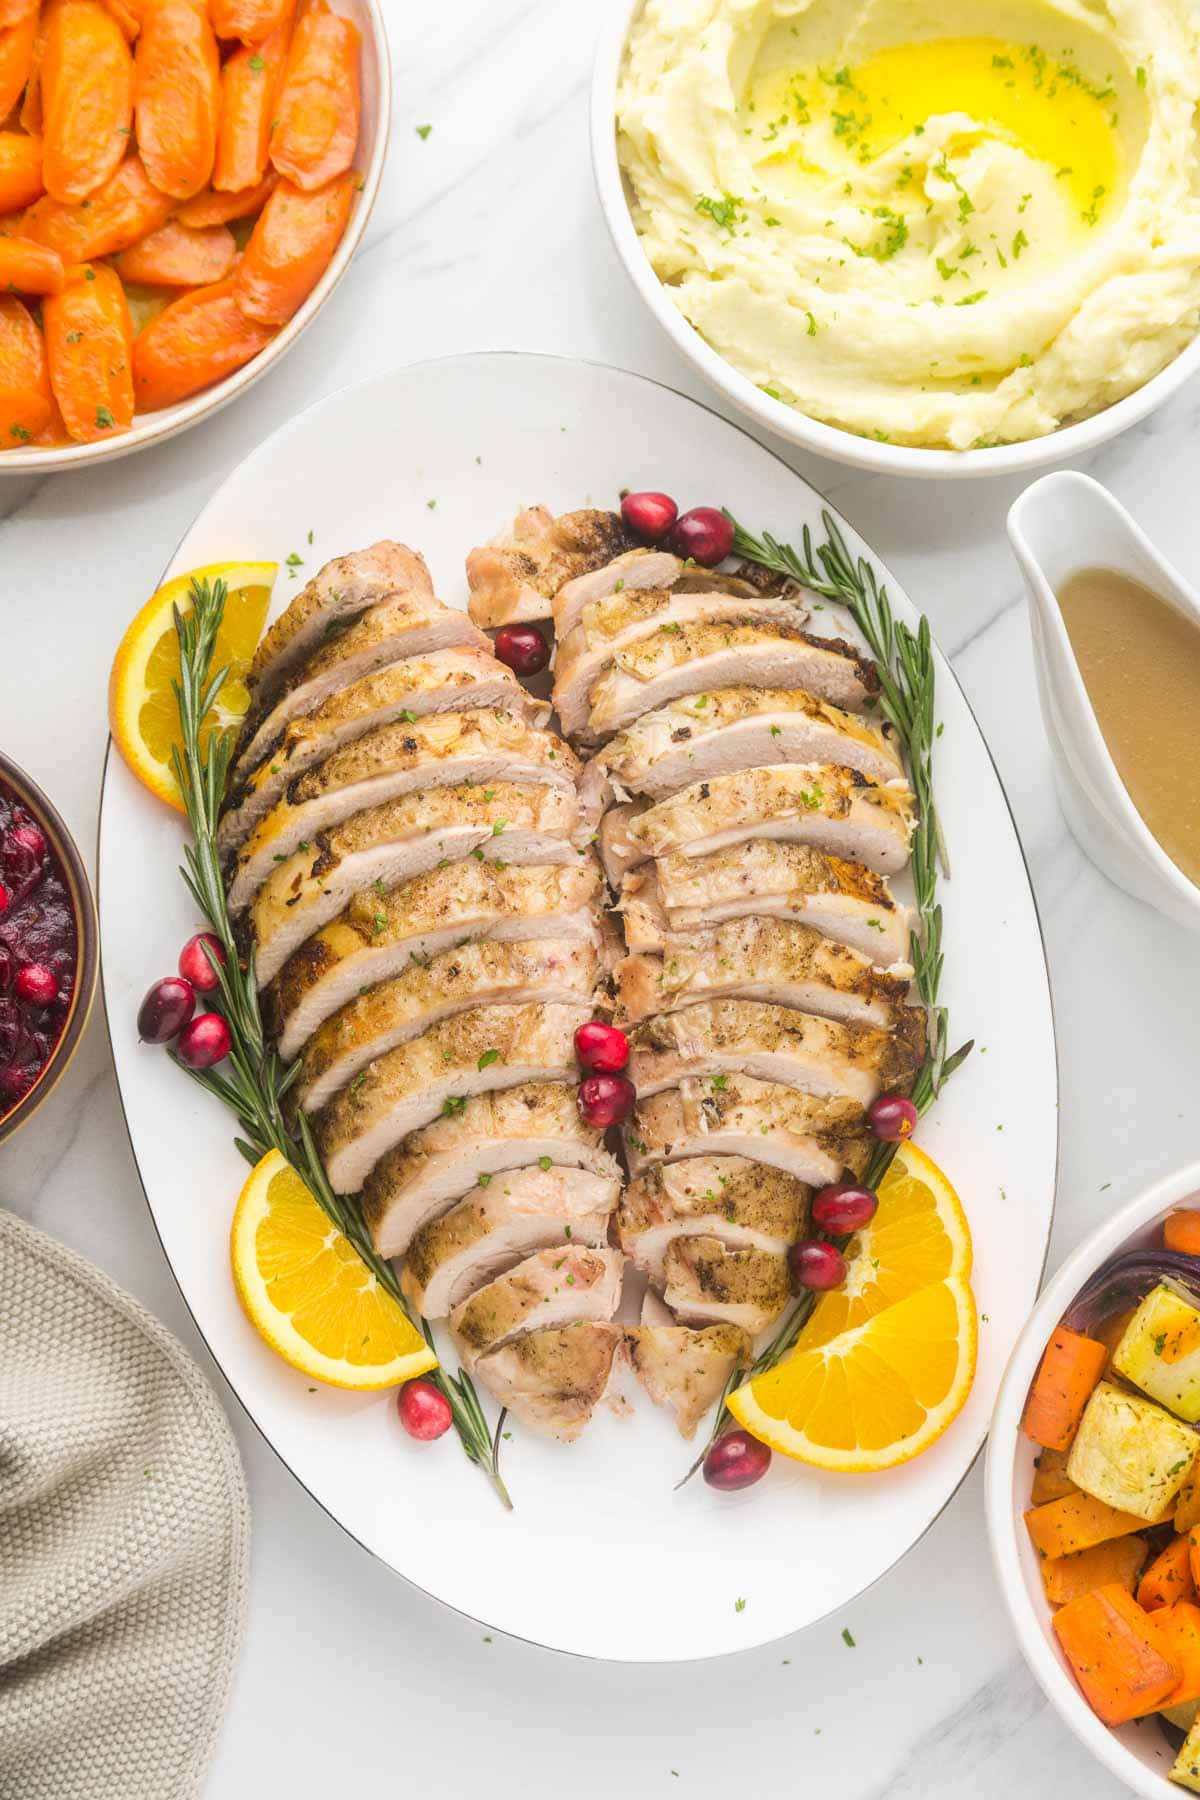 A turkey breast sliced and served on a platter with orange sliced, rosemary sprigs, and fresh cranberries